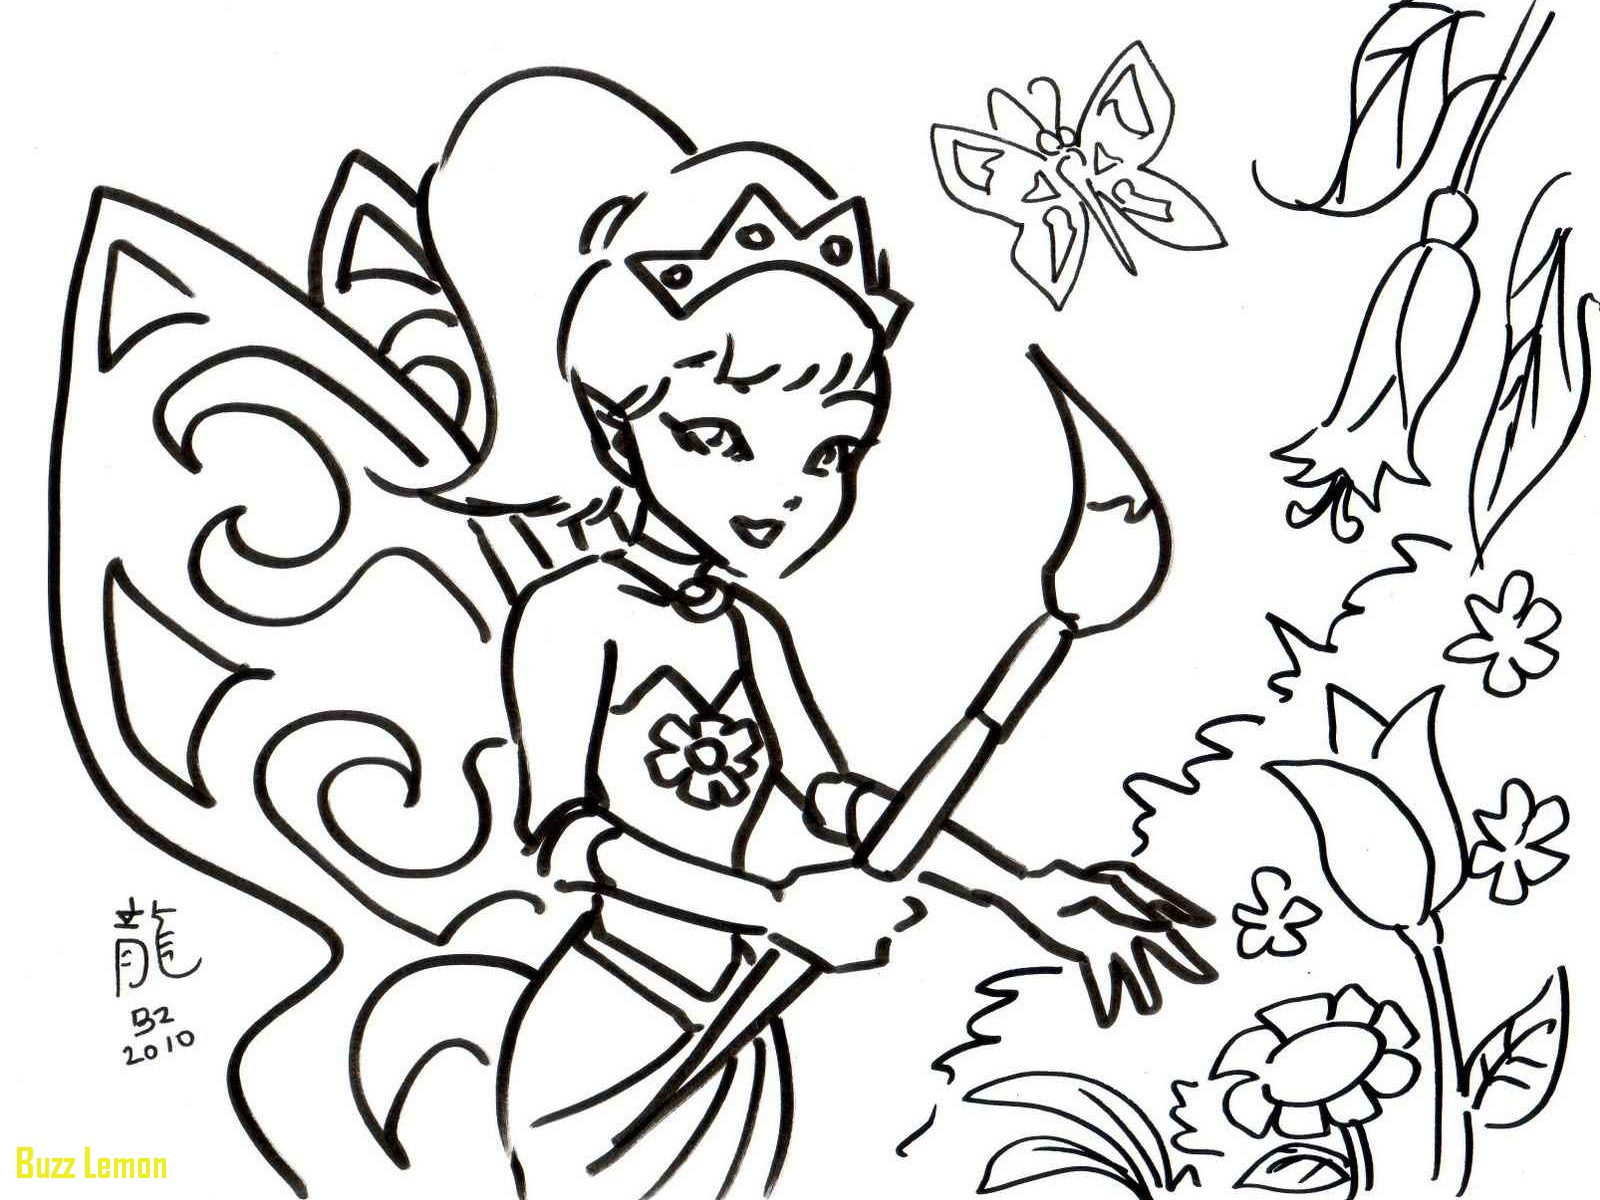 1600x1200 Coloring Page Grade Luxury Grade Coloring Pages Buzz